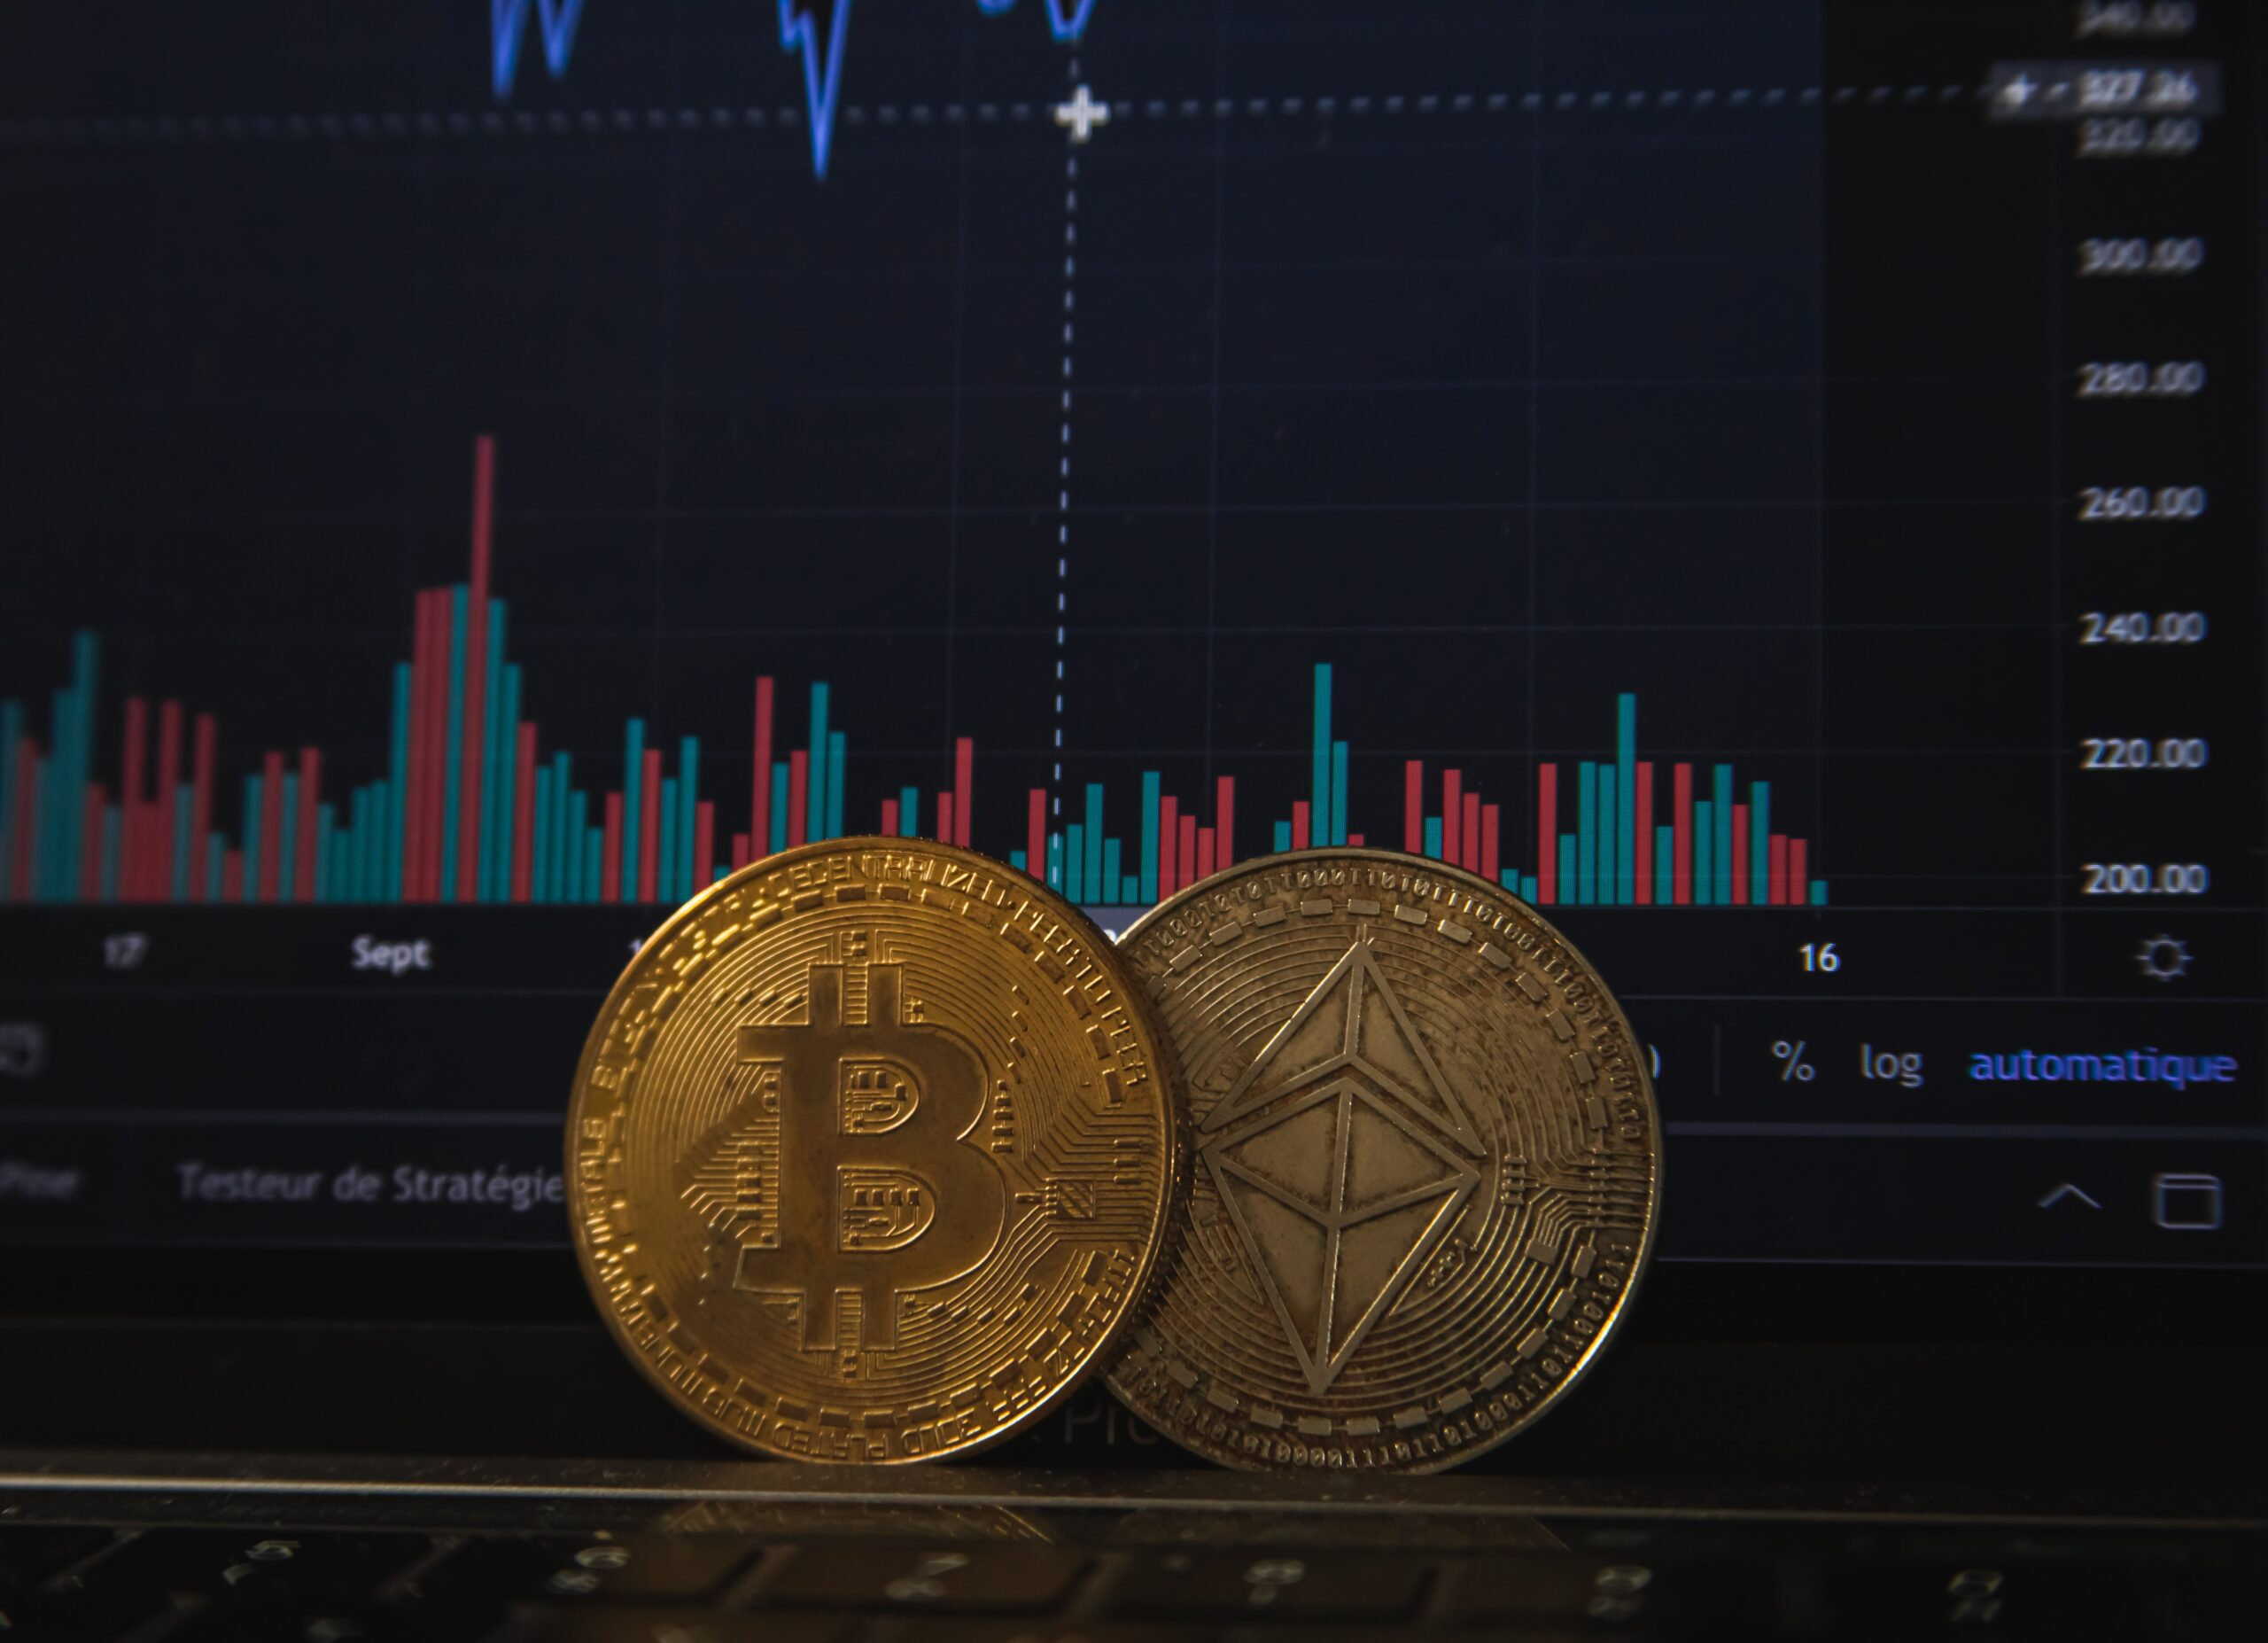 Where to learn about bitcoin trading